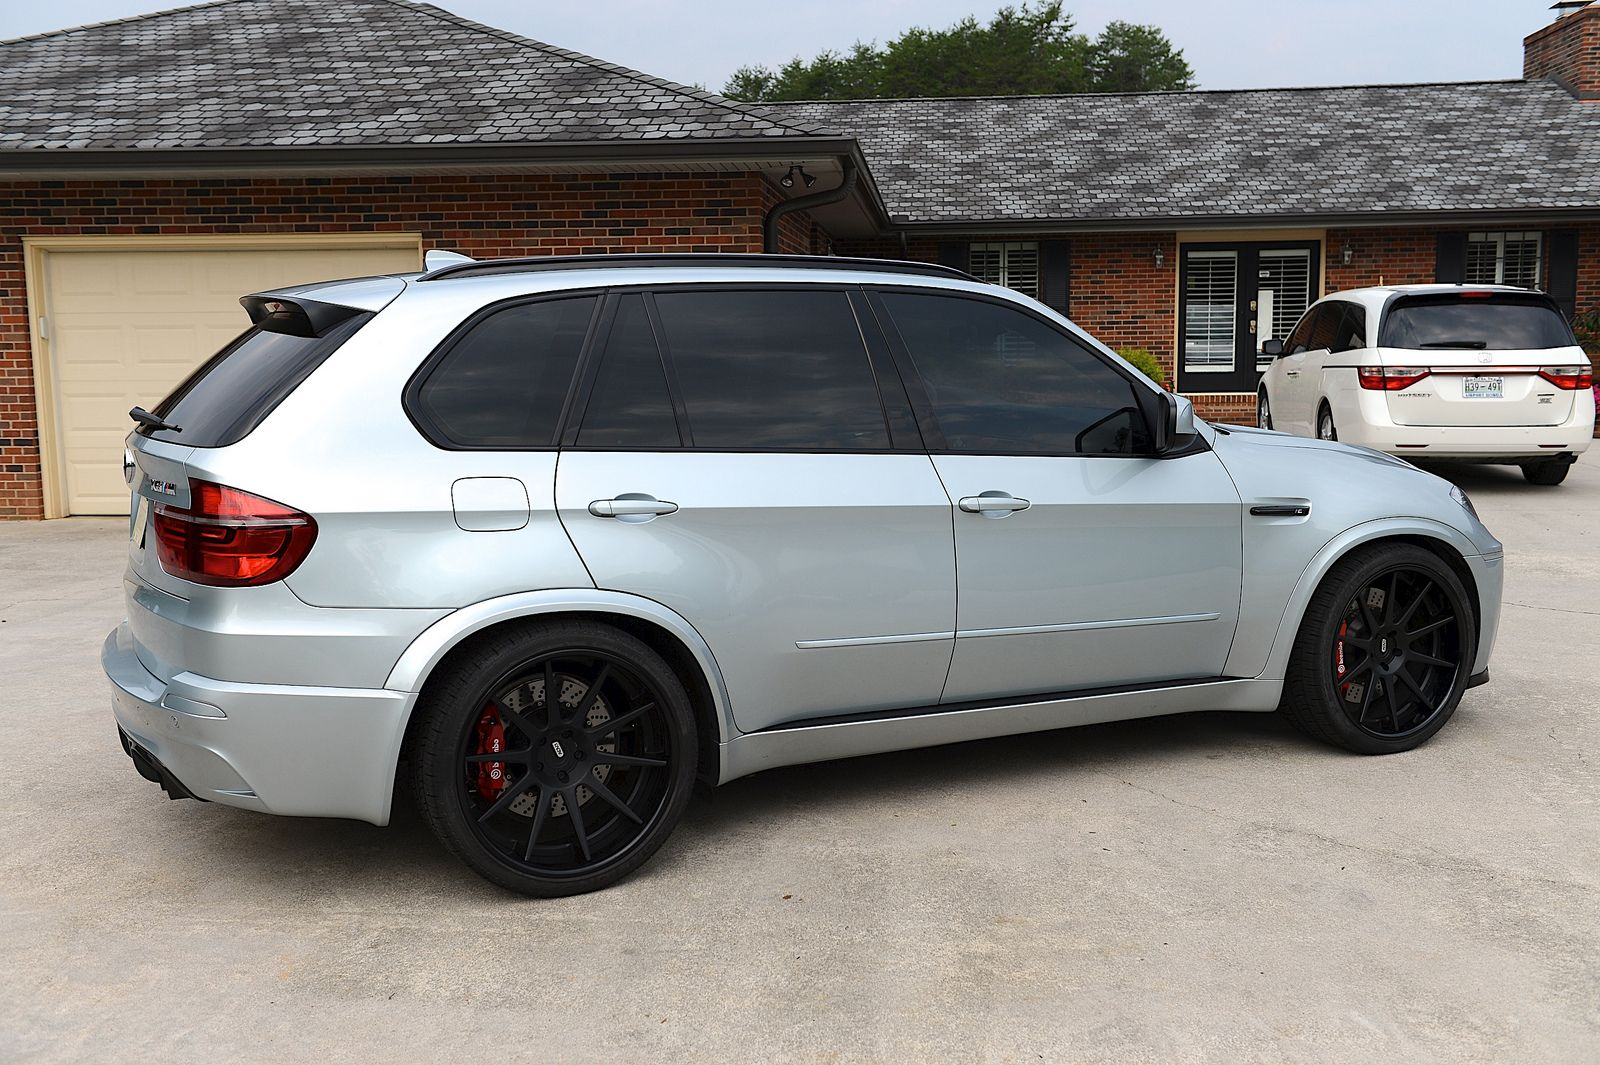 Bmw x5 slammed black wheels